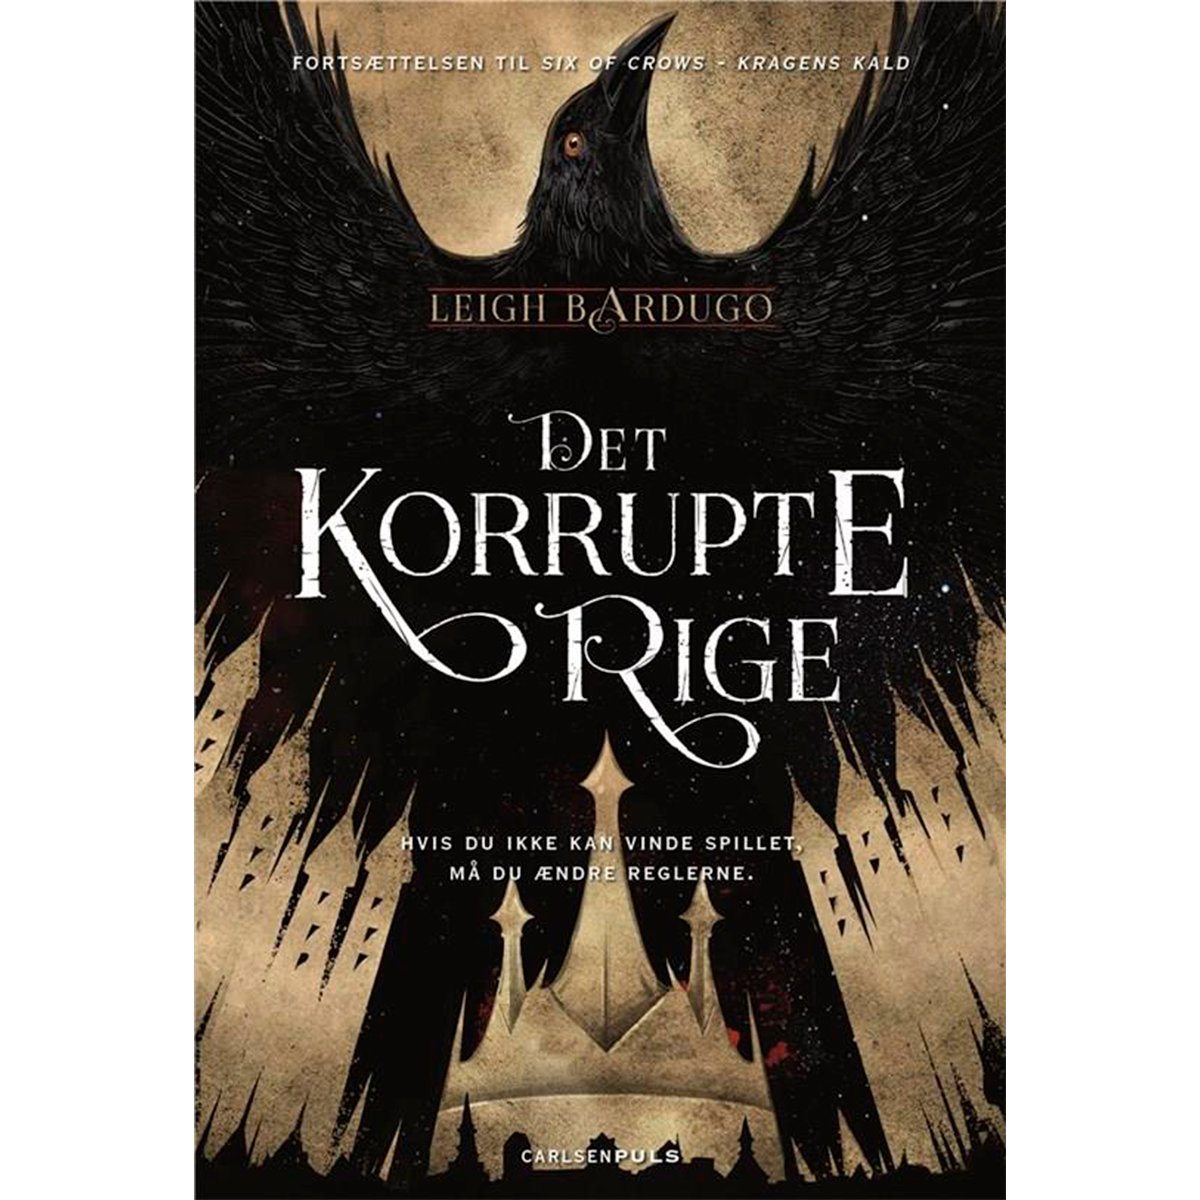 Det korrupte rige - Six of crows 2 - Hæftet